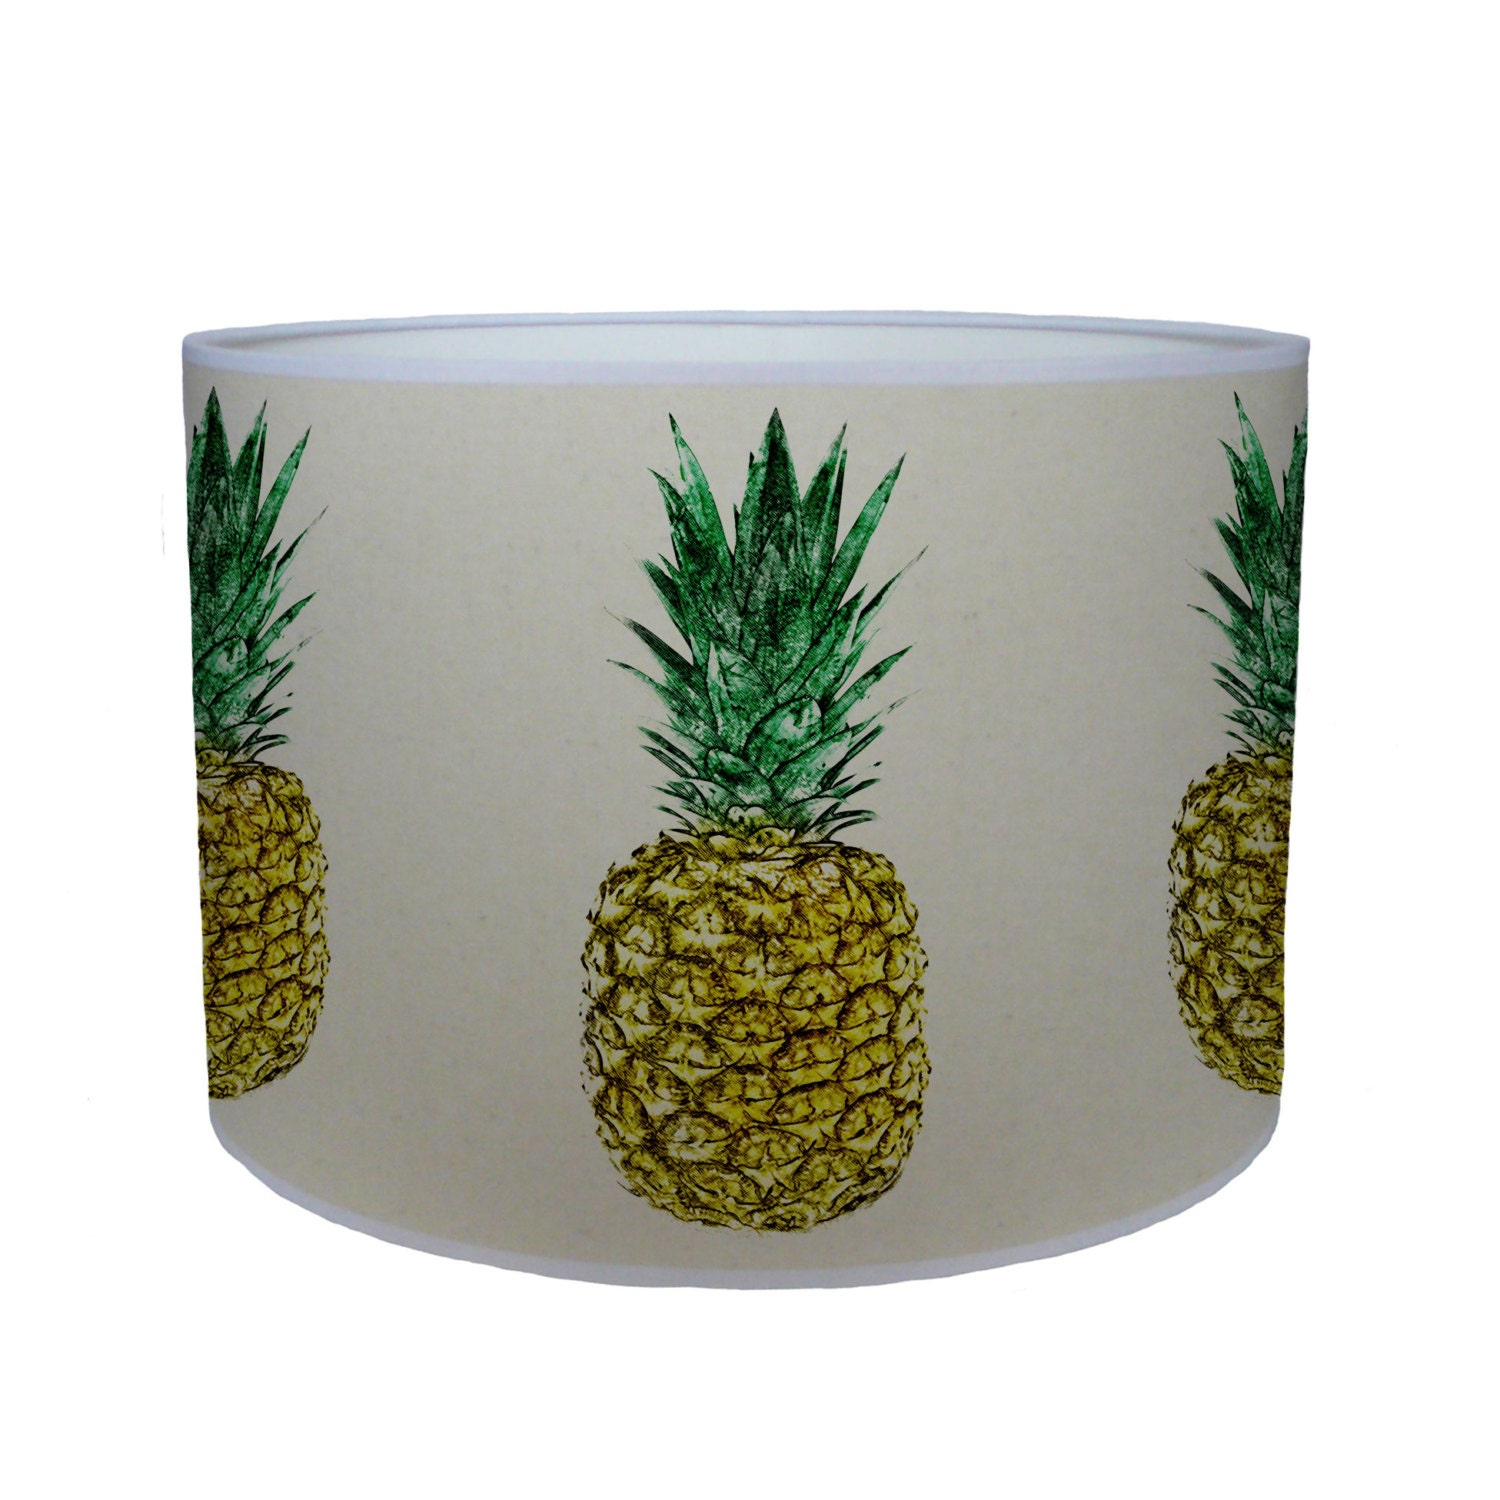 Pineapple shade lamp shade ceiling shade drum lampshade lighting handmade home